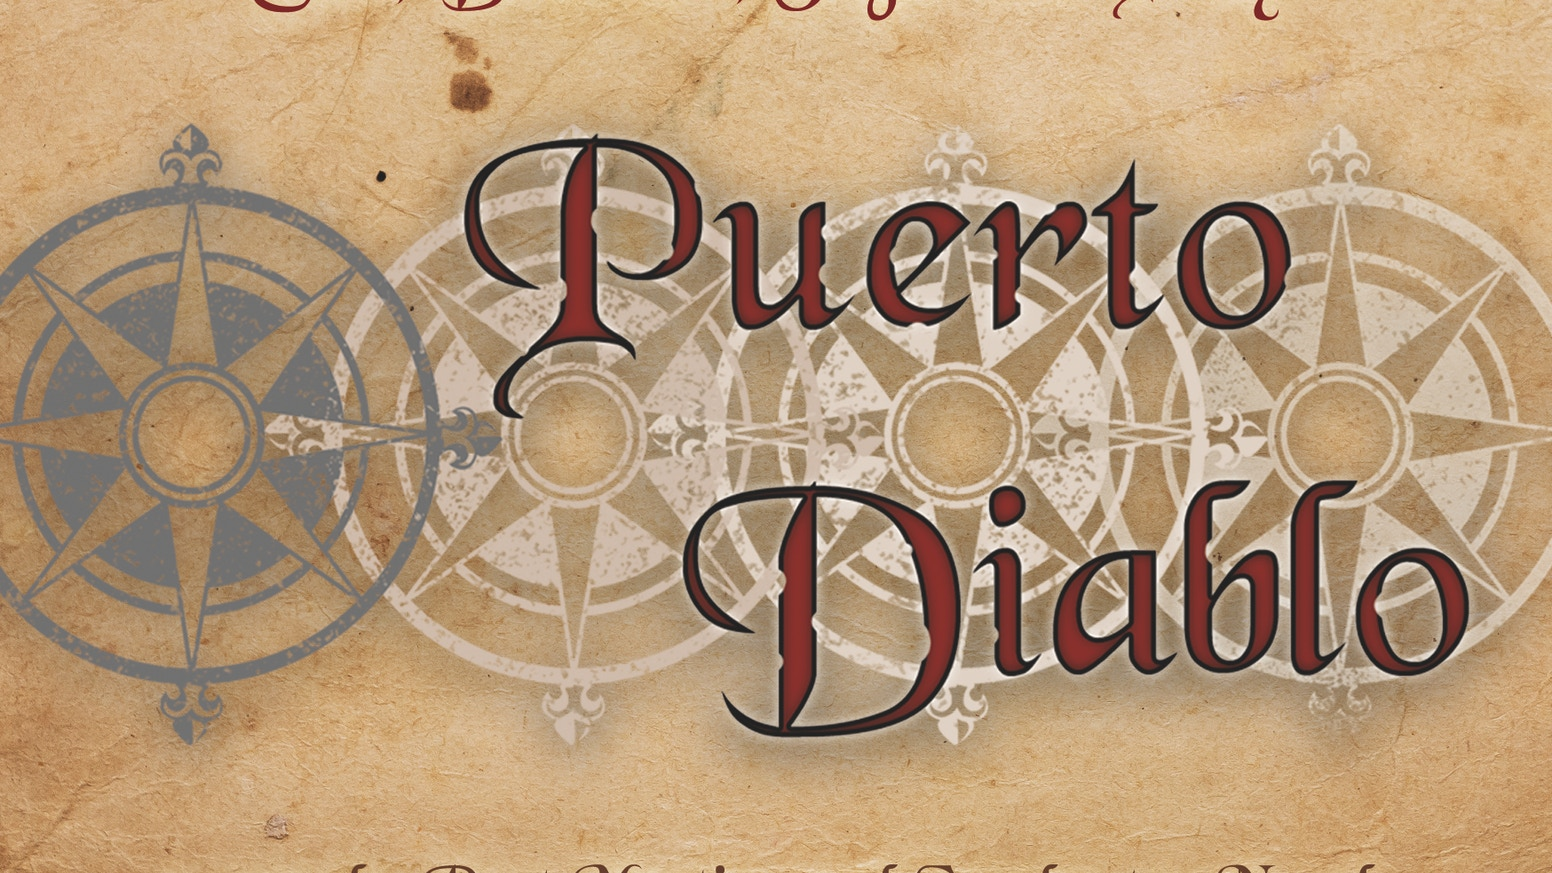 Puerto Diablo - Sail, discover, fight, trade and pray  by